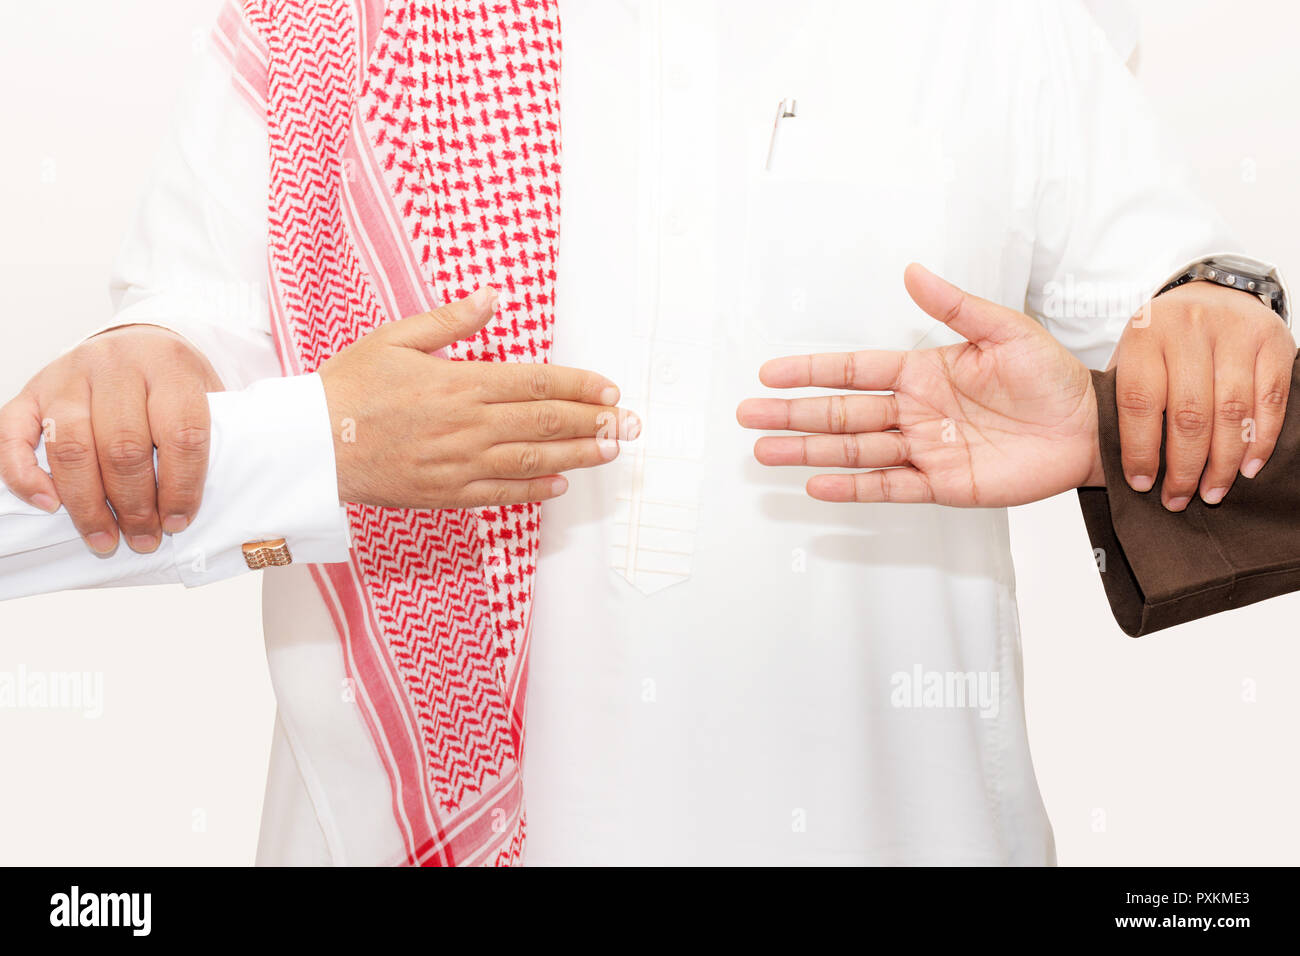 Saudi man holds two hands persons to reconciliation agreement as shake hands concept Stock Photo